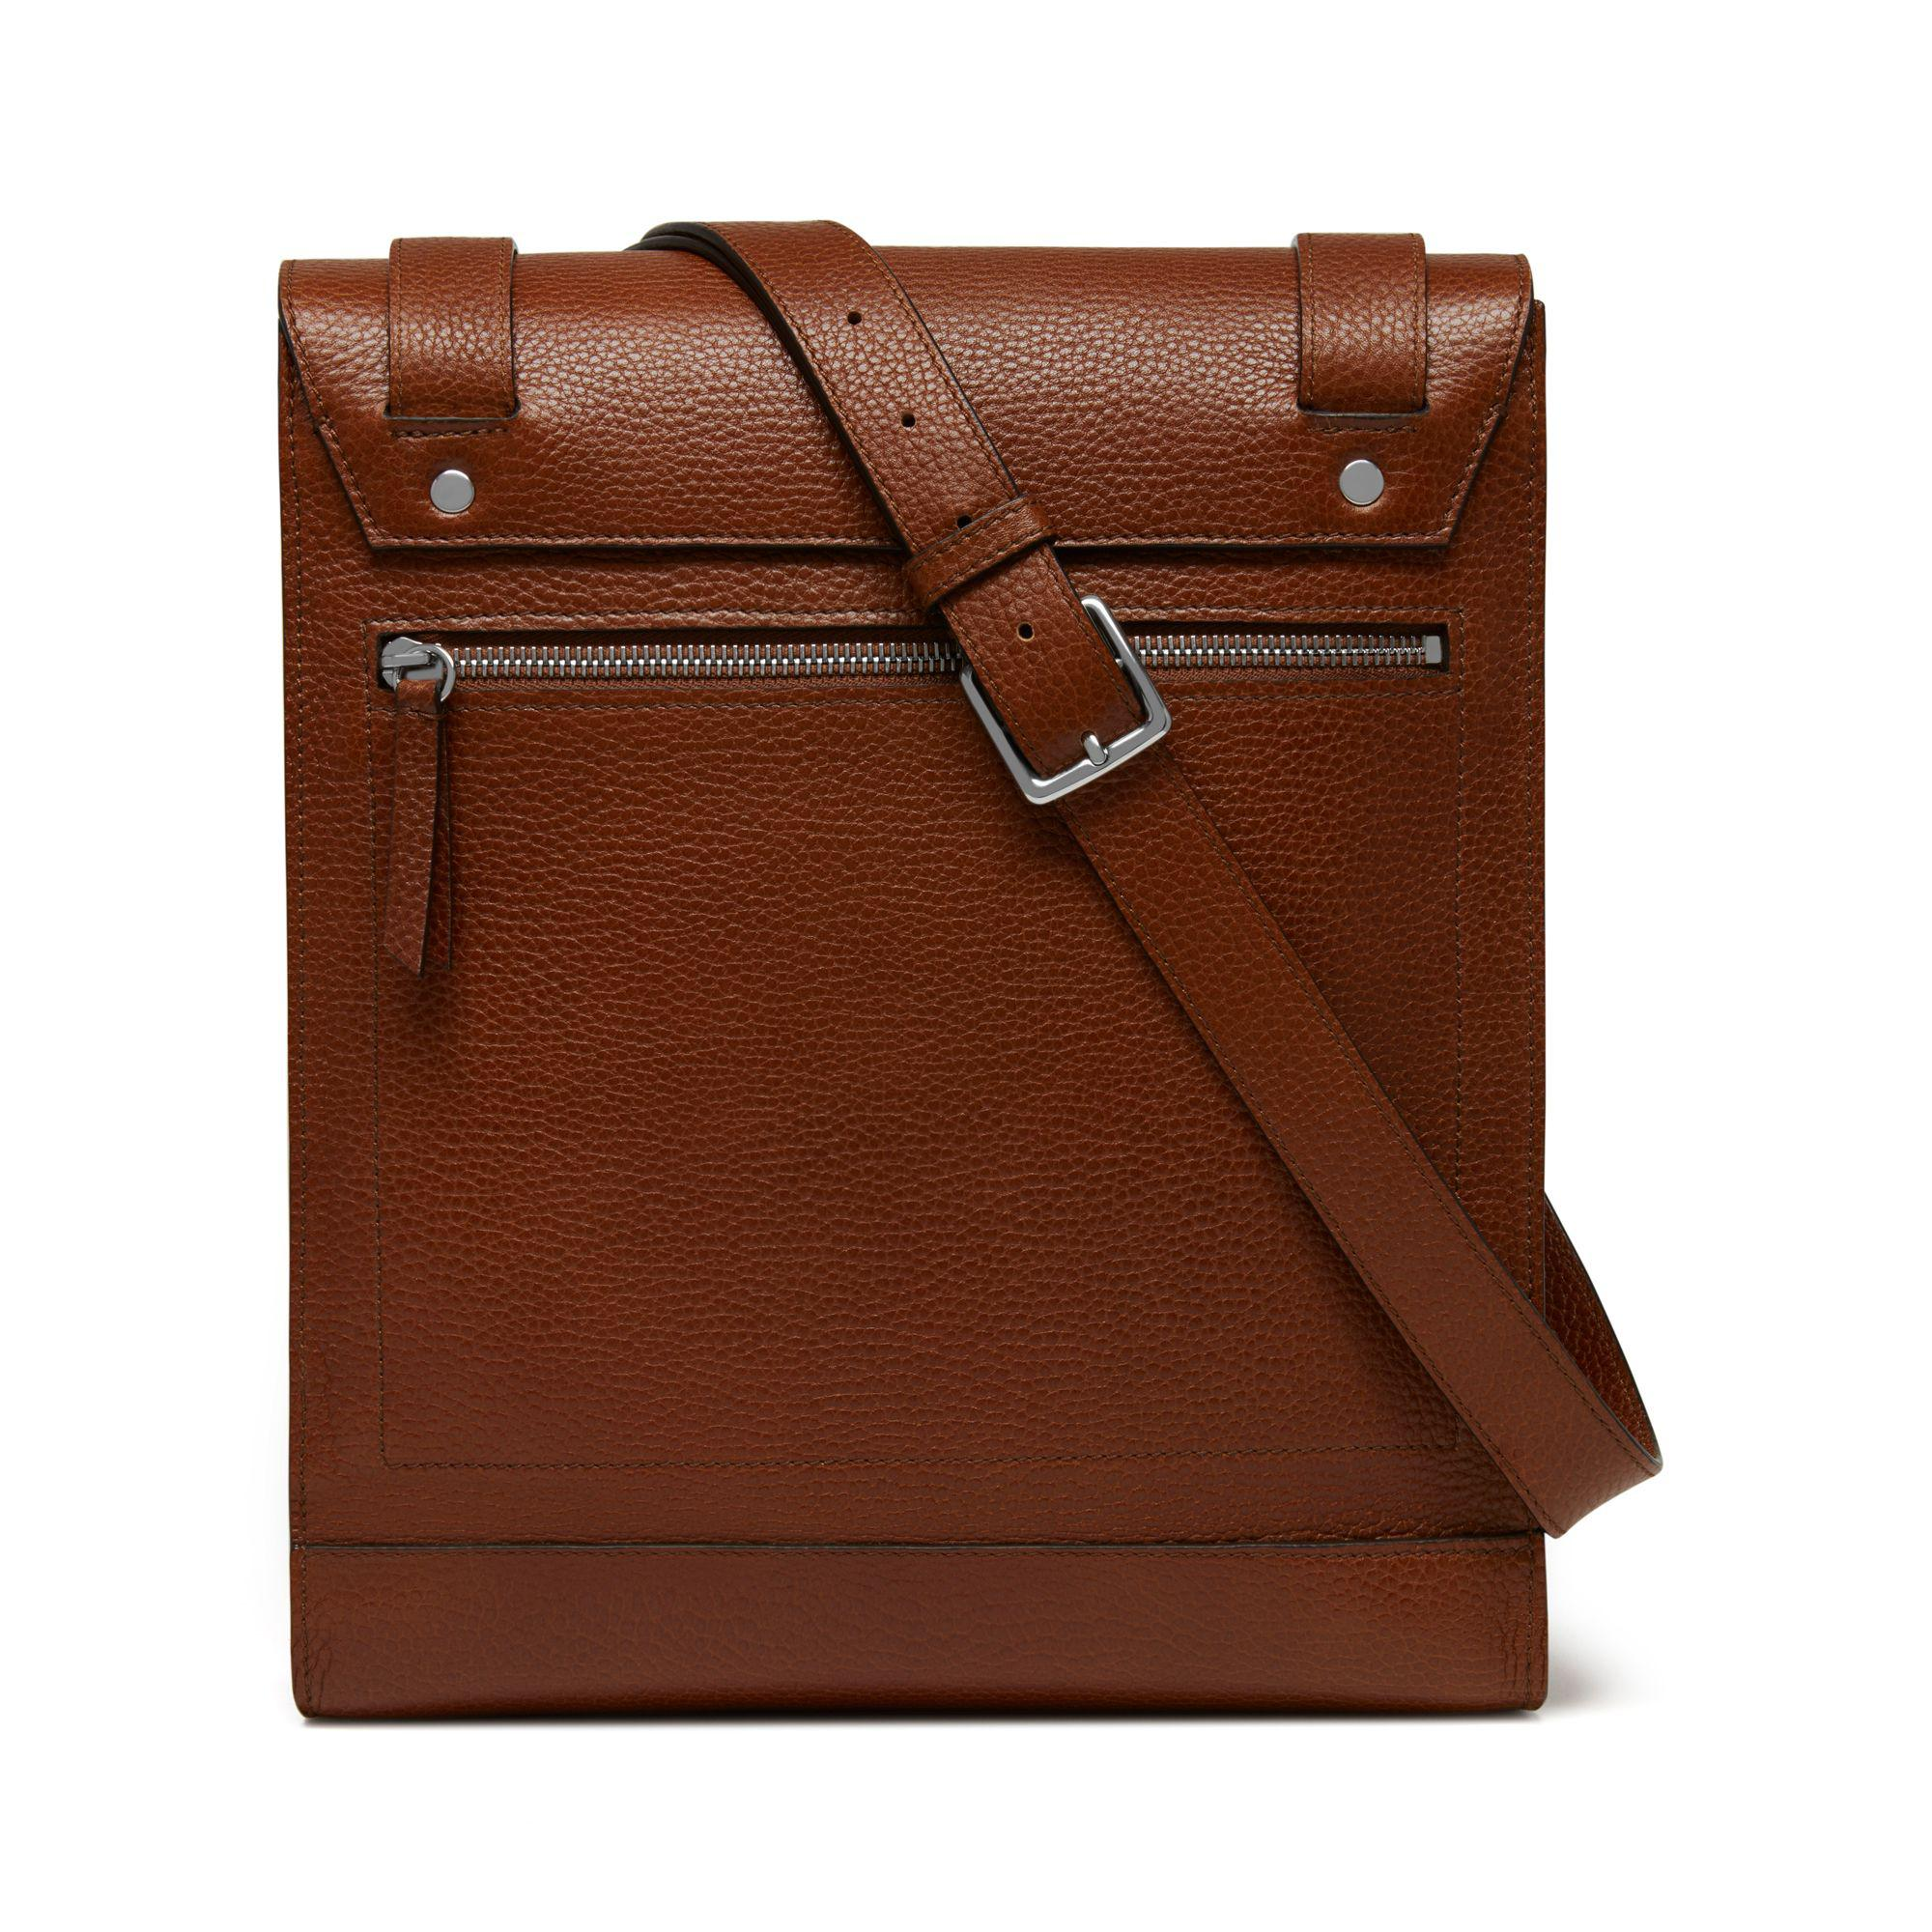 70735f8e996c ireland mulberry small antony messenger bag tjrbfh d179d 2dc6f  promo code  mulberry chiltern messenger in brown for men lyst 190ff 89f71